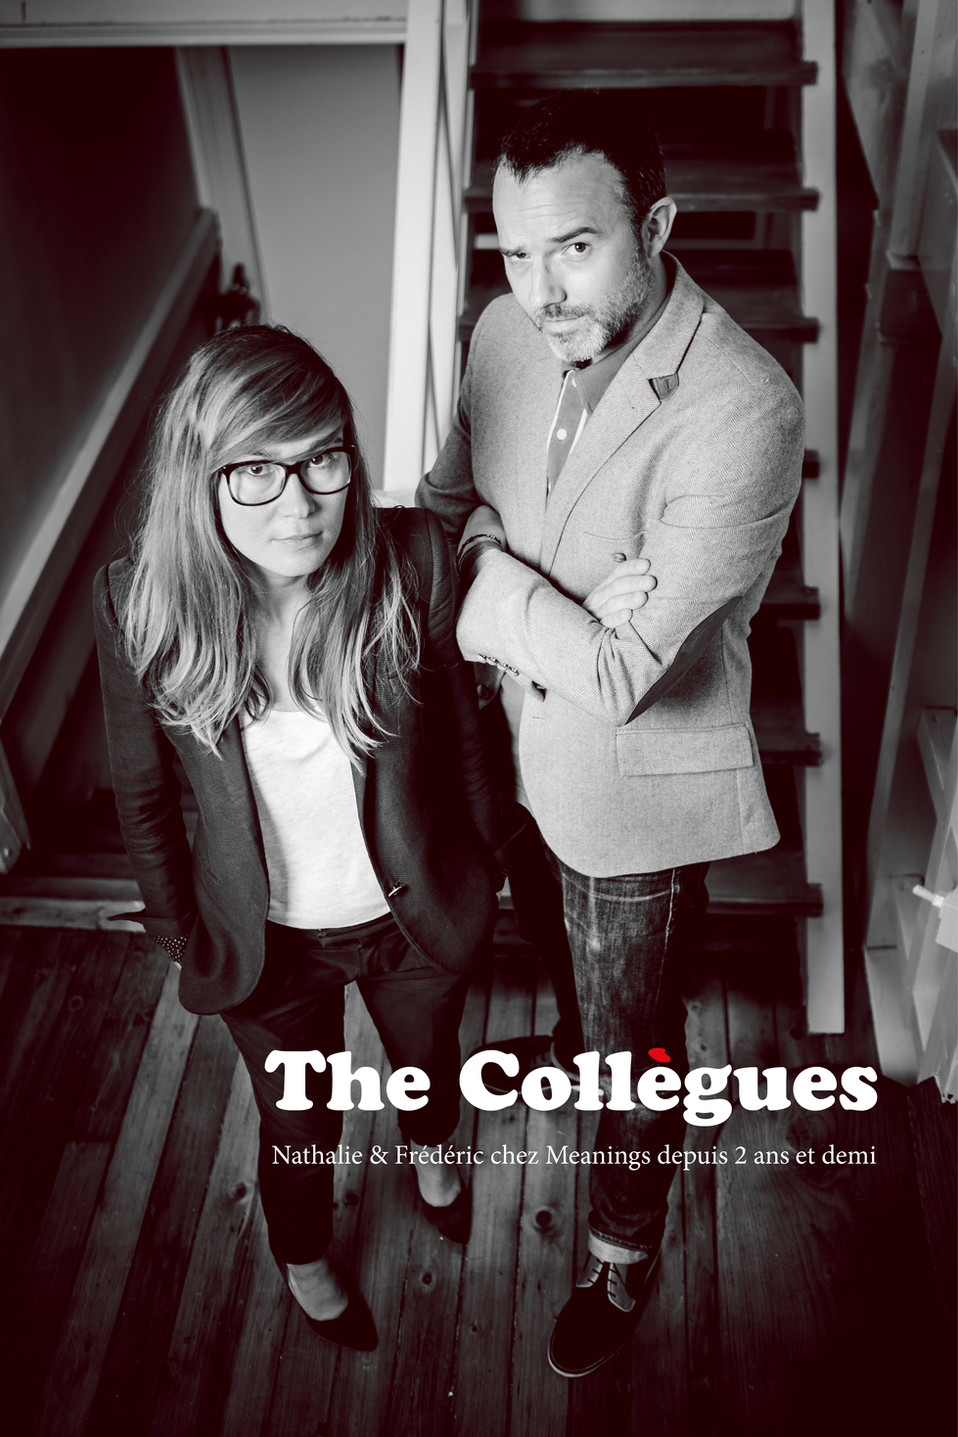 THE COLLÈGUES